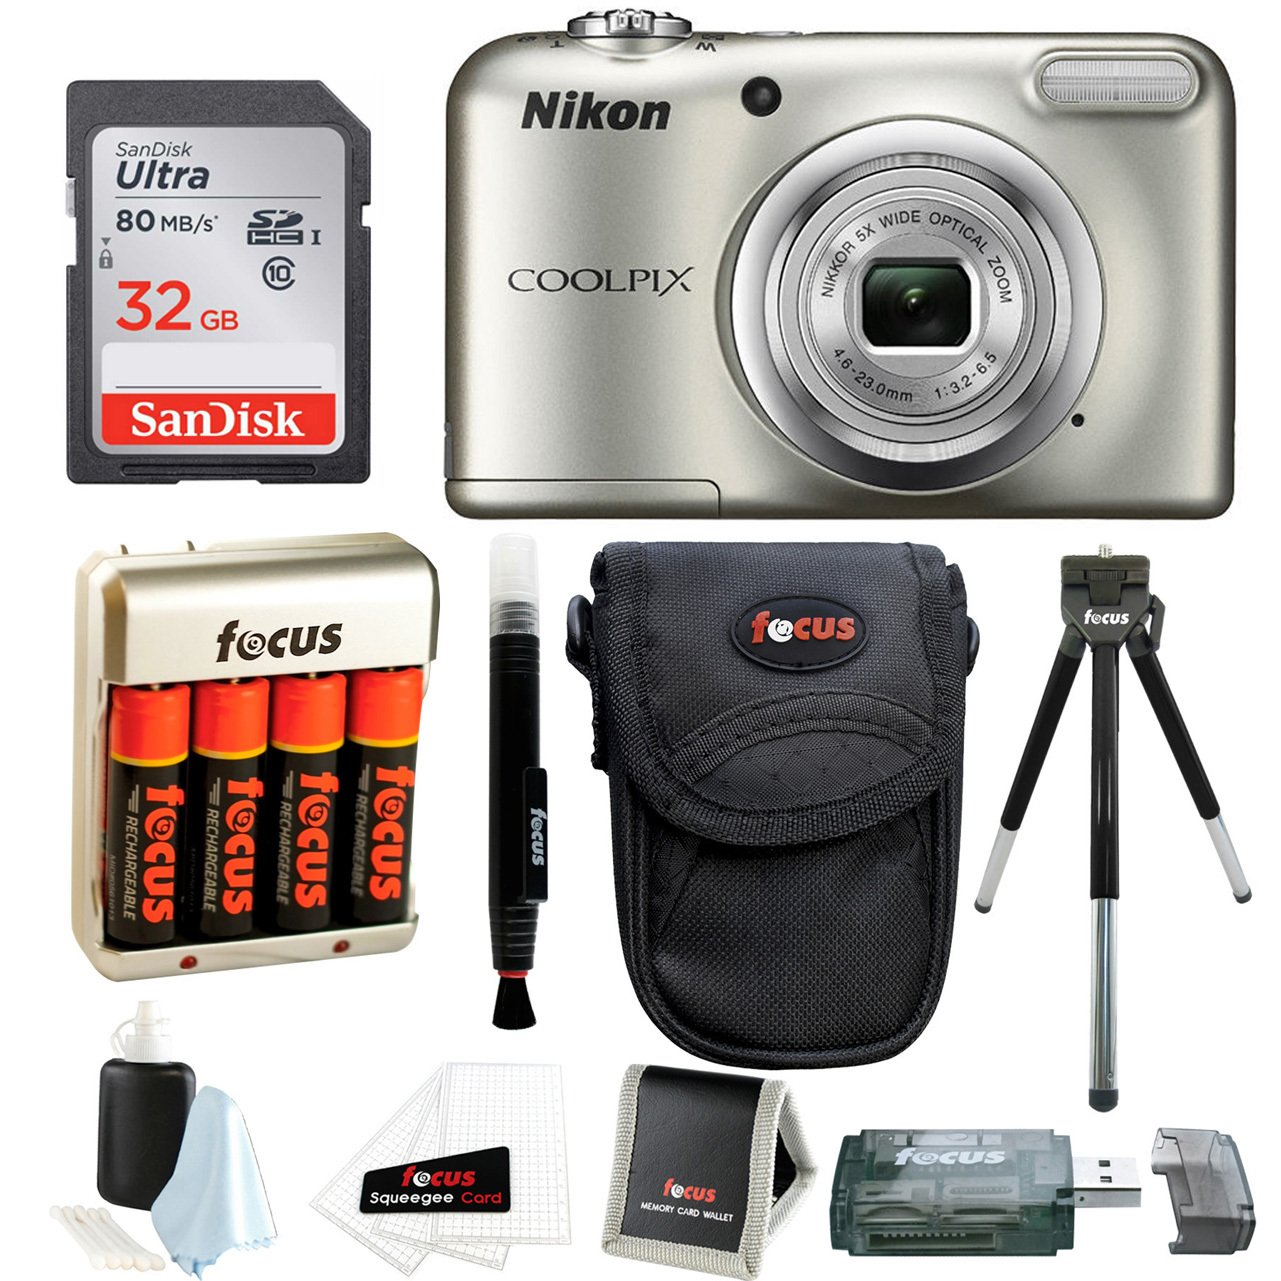 Nikon Coolpix A10 Digital Camera with 32GB Card and Batteries and Bundle by Nikon